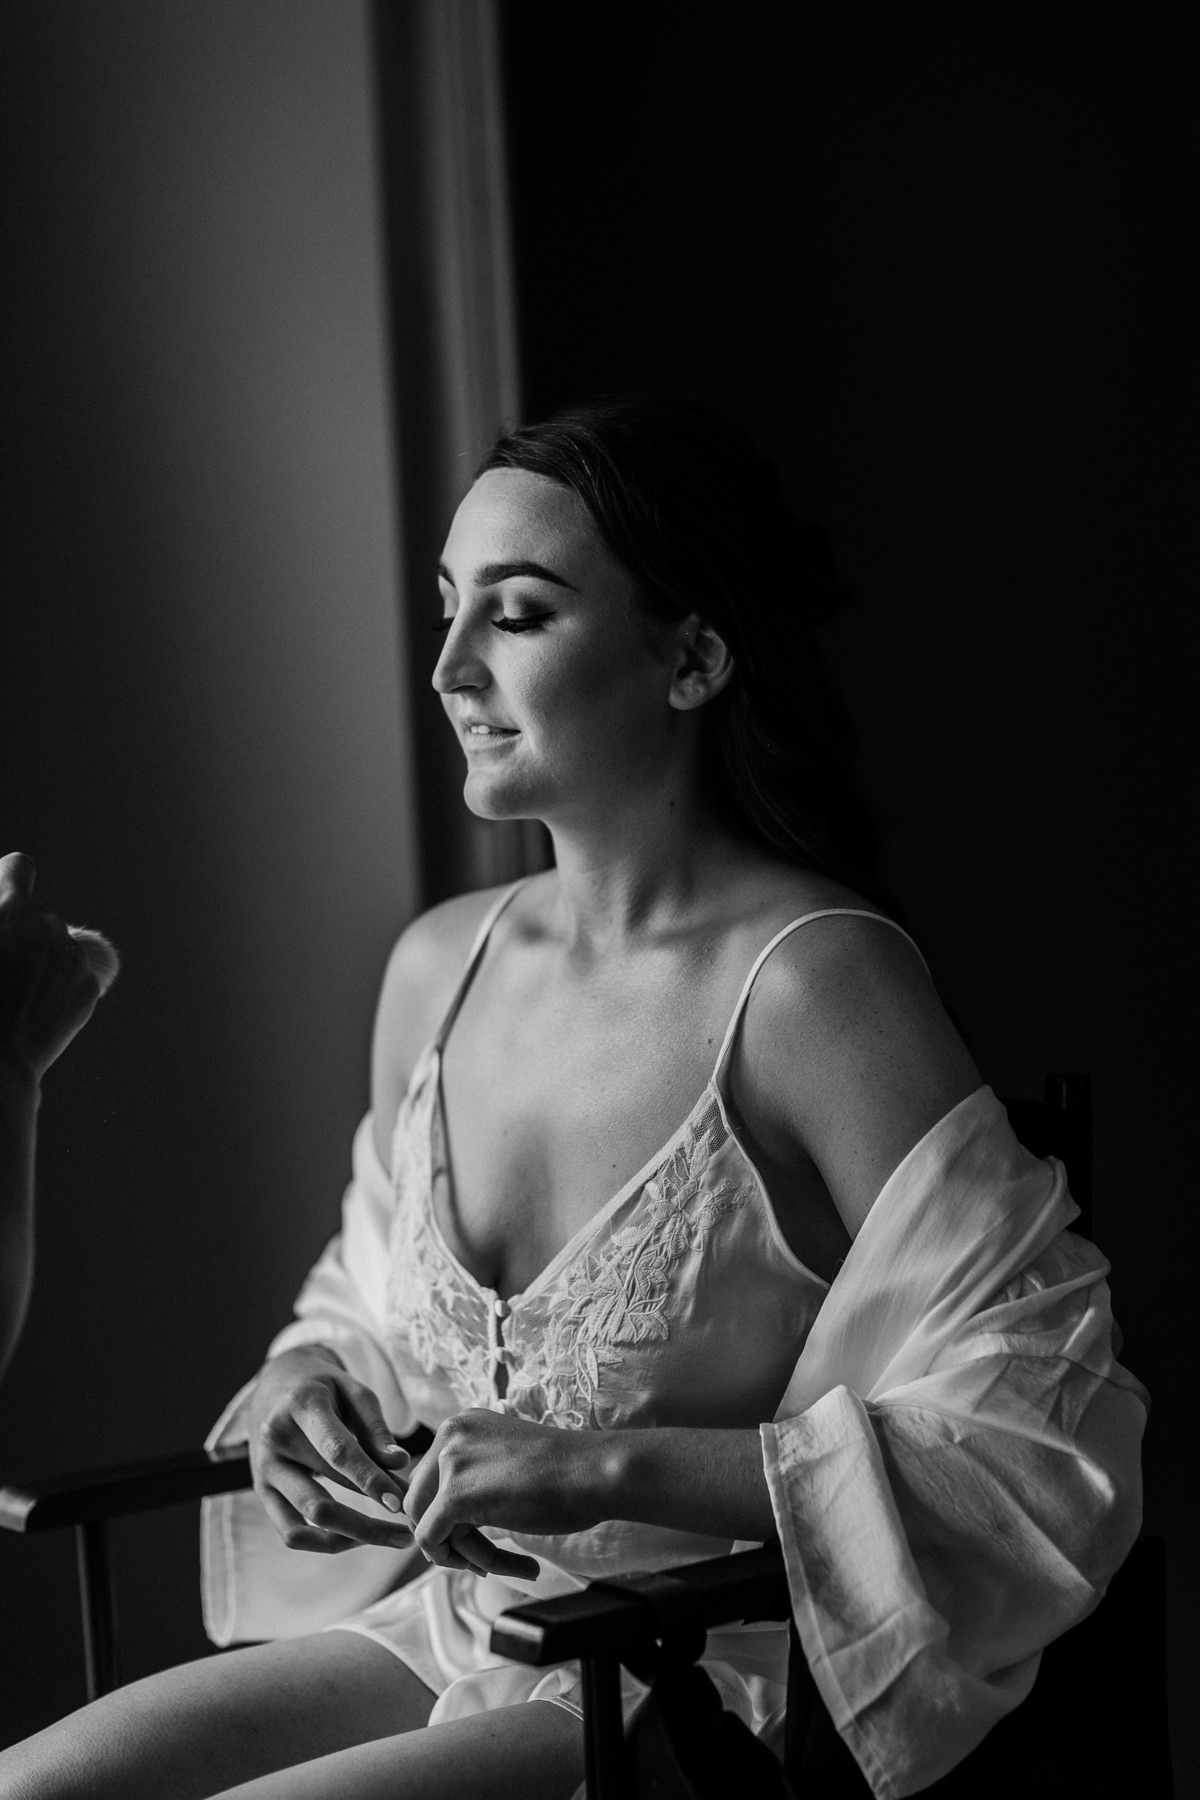 black and white image of bride getting make up done on the morning of the wedding day